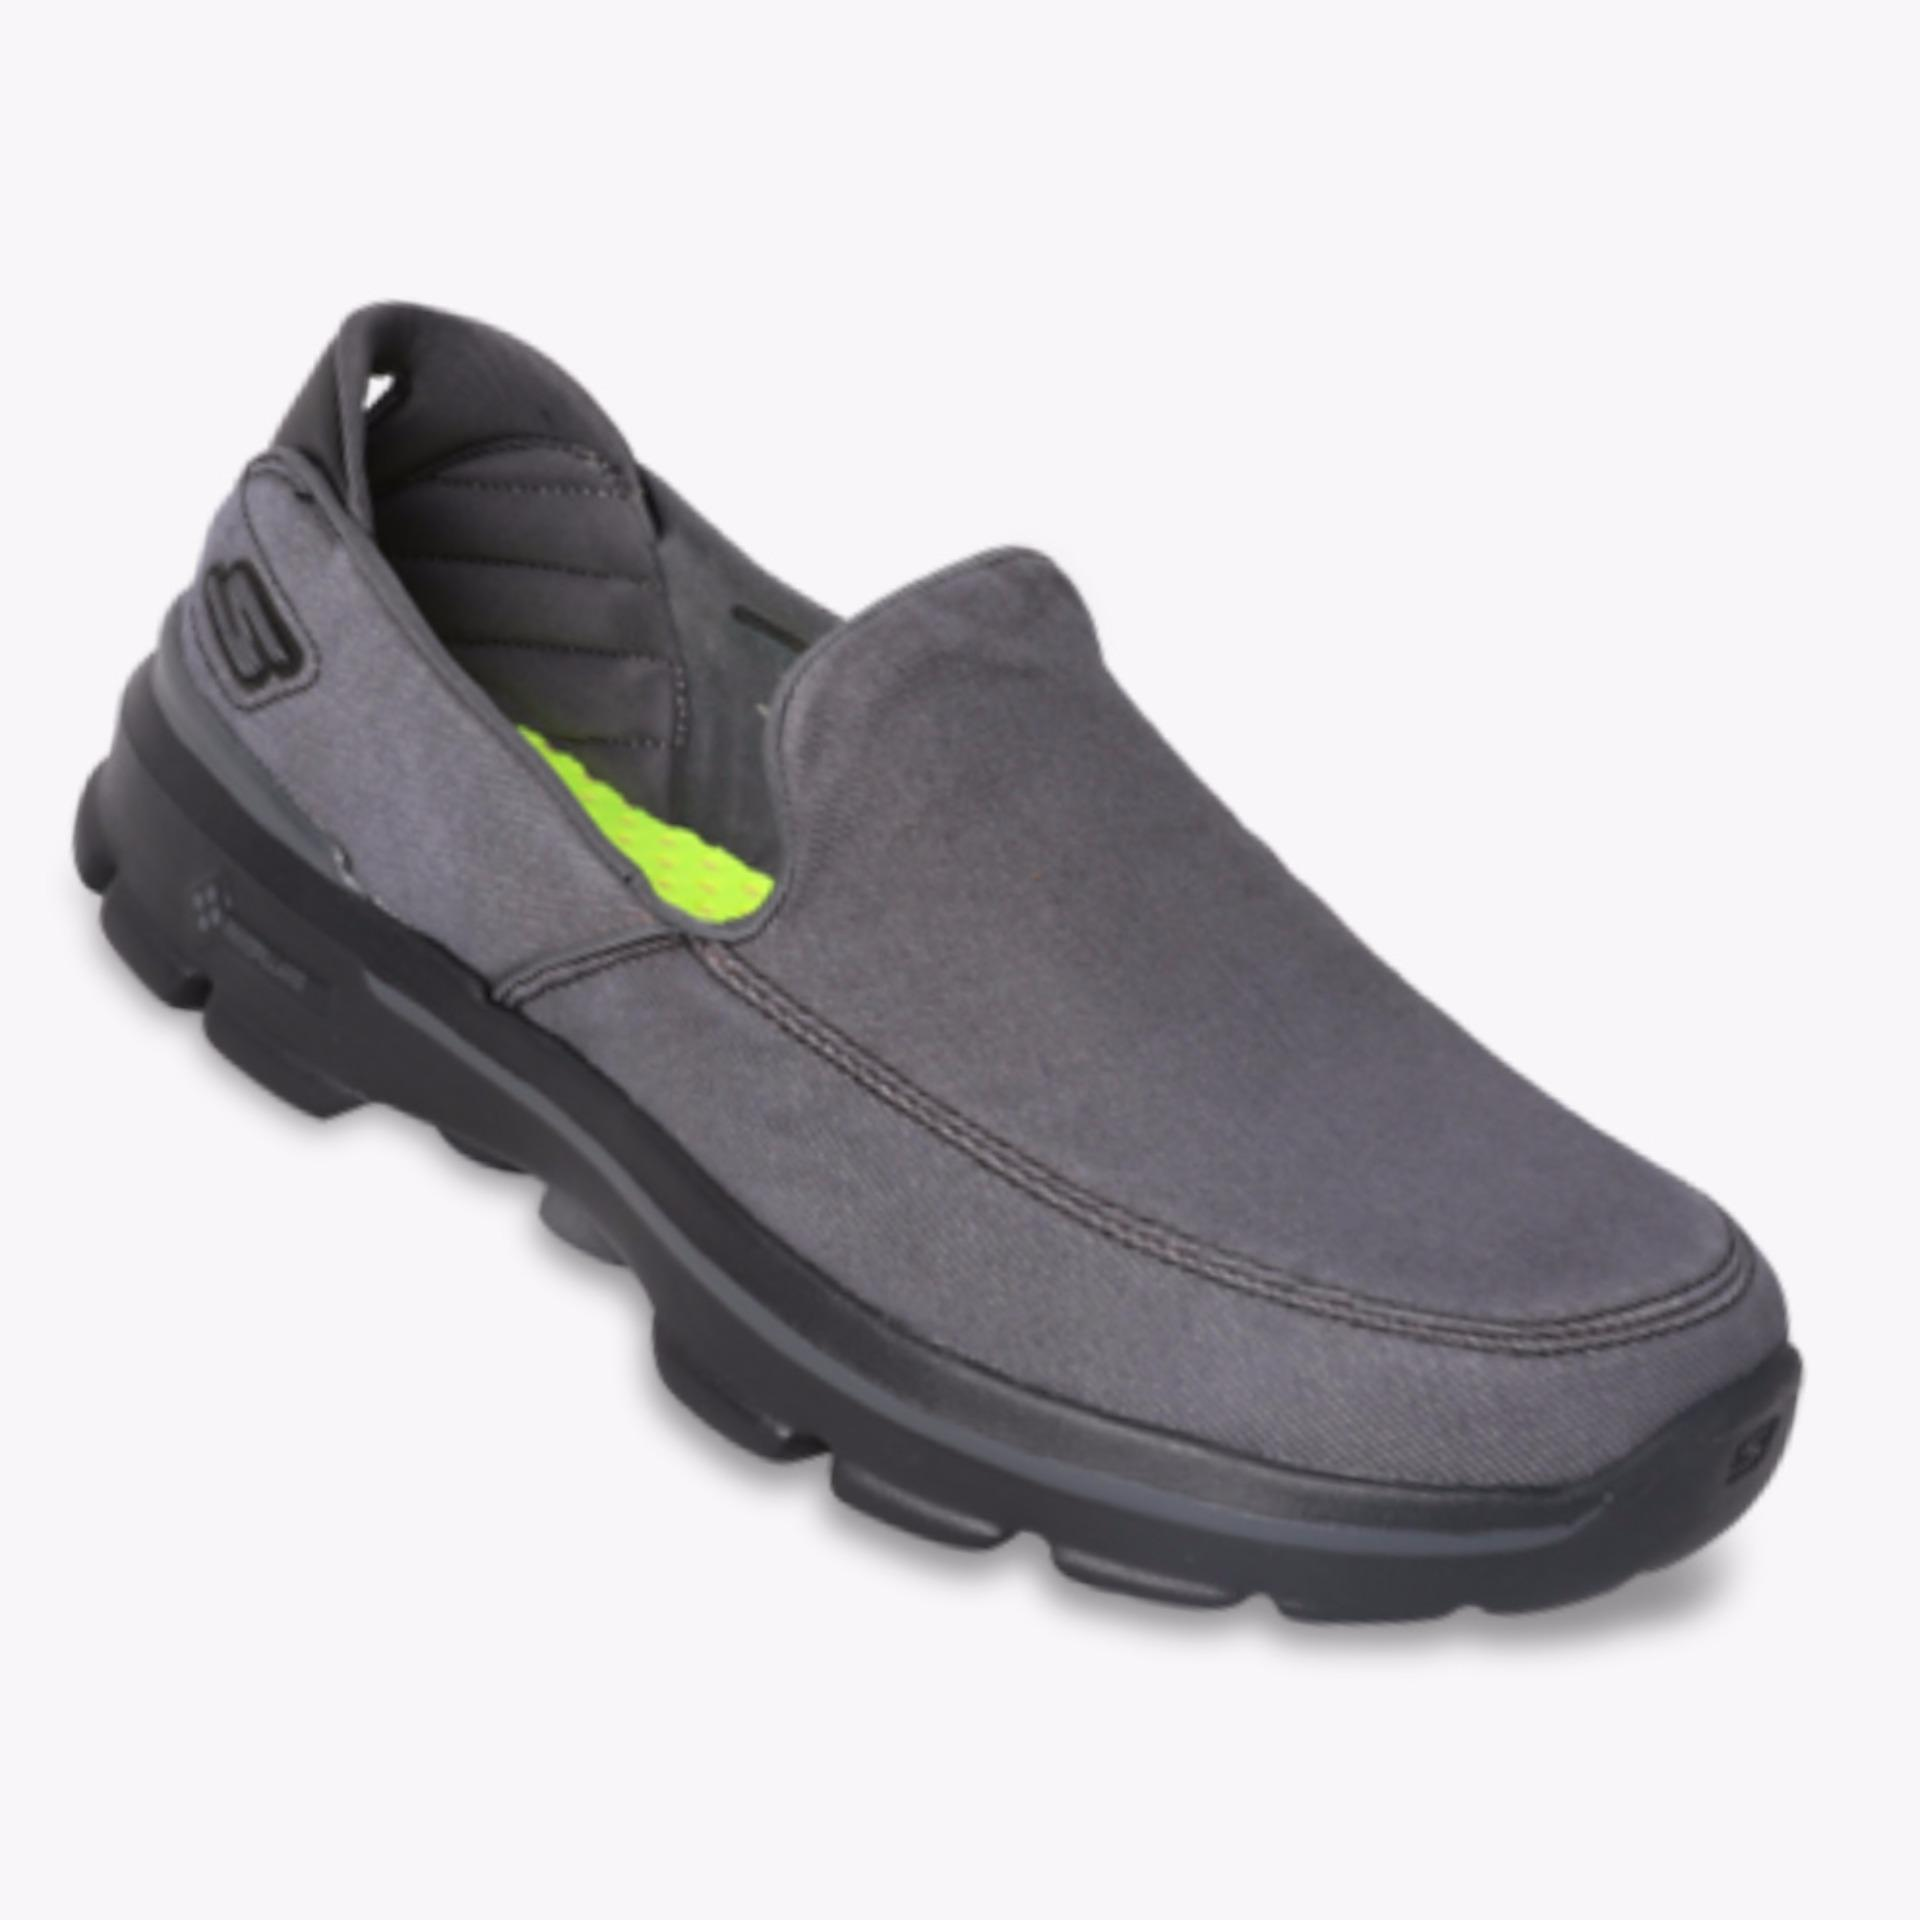 Skechers Gowalk 3 Unwind Men S Sneakers Hitam Indonesia Diskon 50